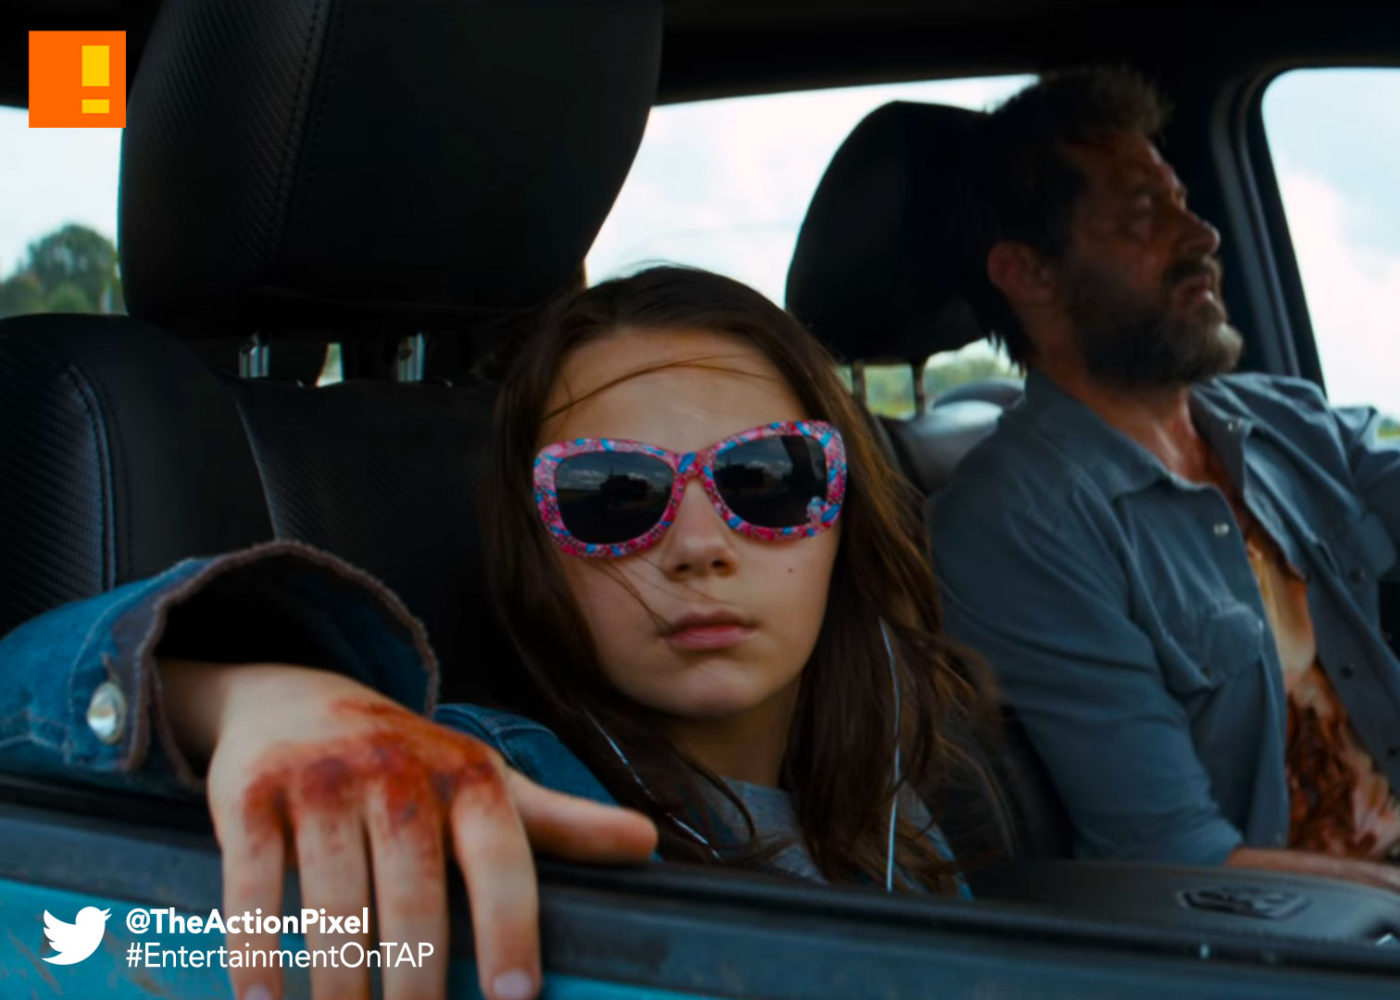 dafne keen, logan, hugh jackman, wolverine, 20th century fox, marvel , marvel comics, entertainment on tap, the action pixel, x-23, dafne keen, patrick stewart, hugh jackman, professor x, xavier,